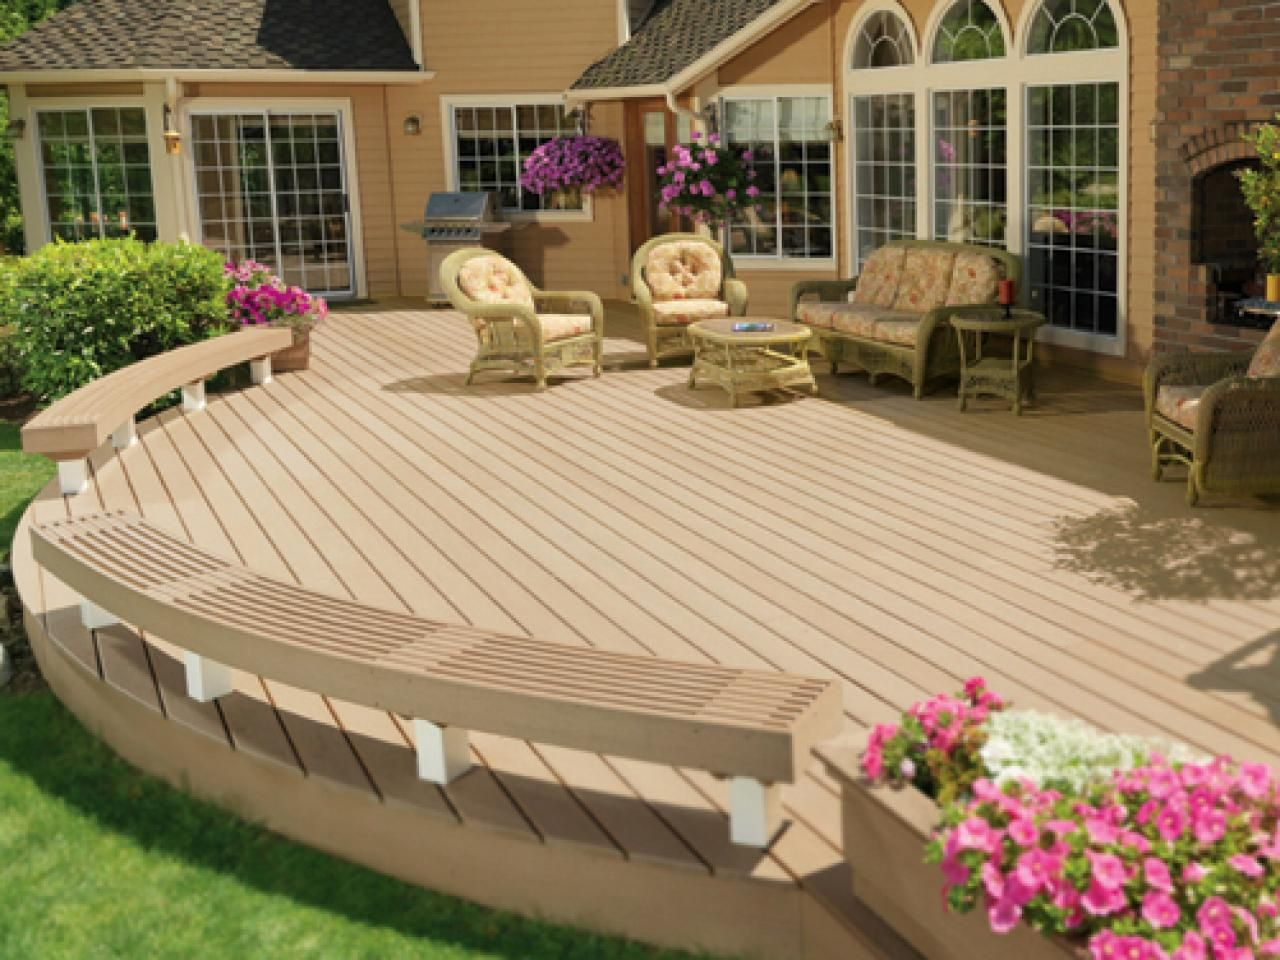 space planning tips for a deck - Deck Design Ideas